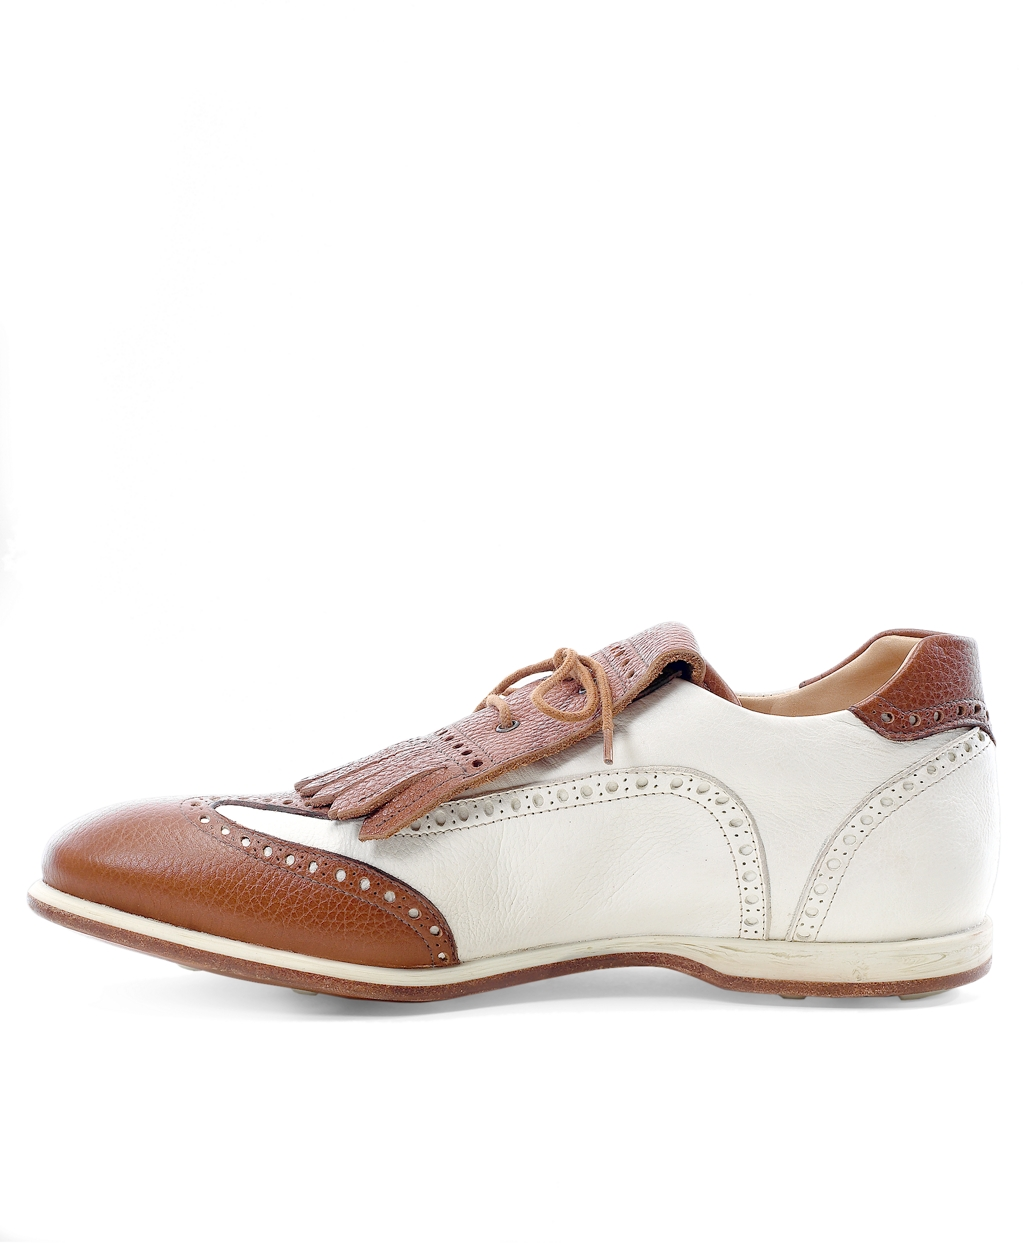 0256adf27e7c2 Lyst - Brooks Brothers Kiltie Golf Shoes in Brown for Men